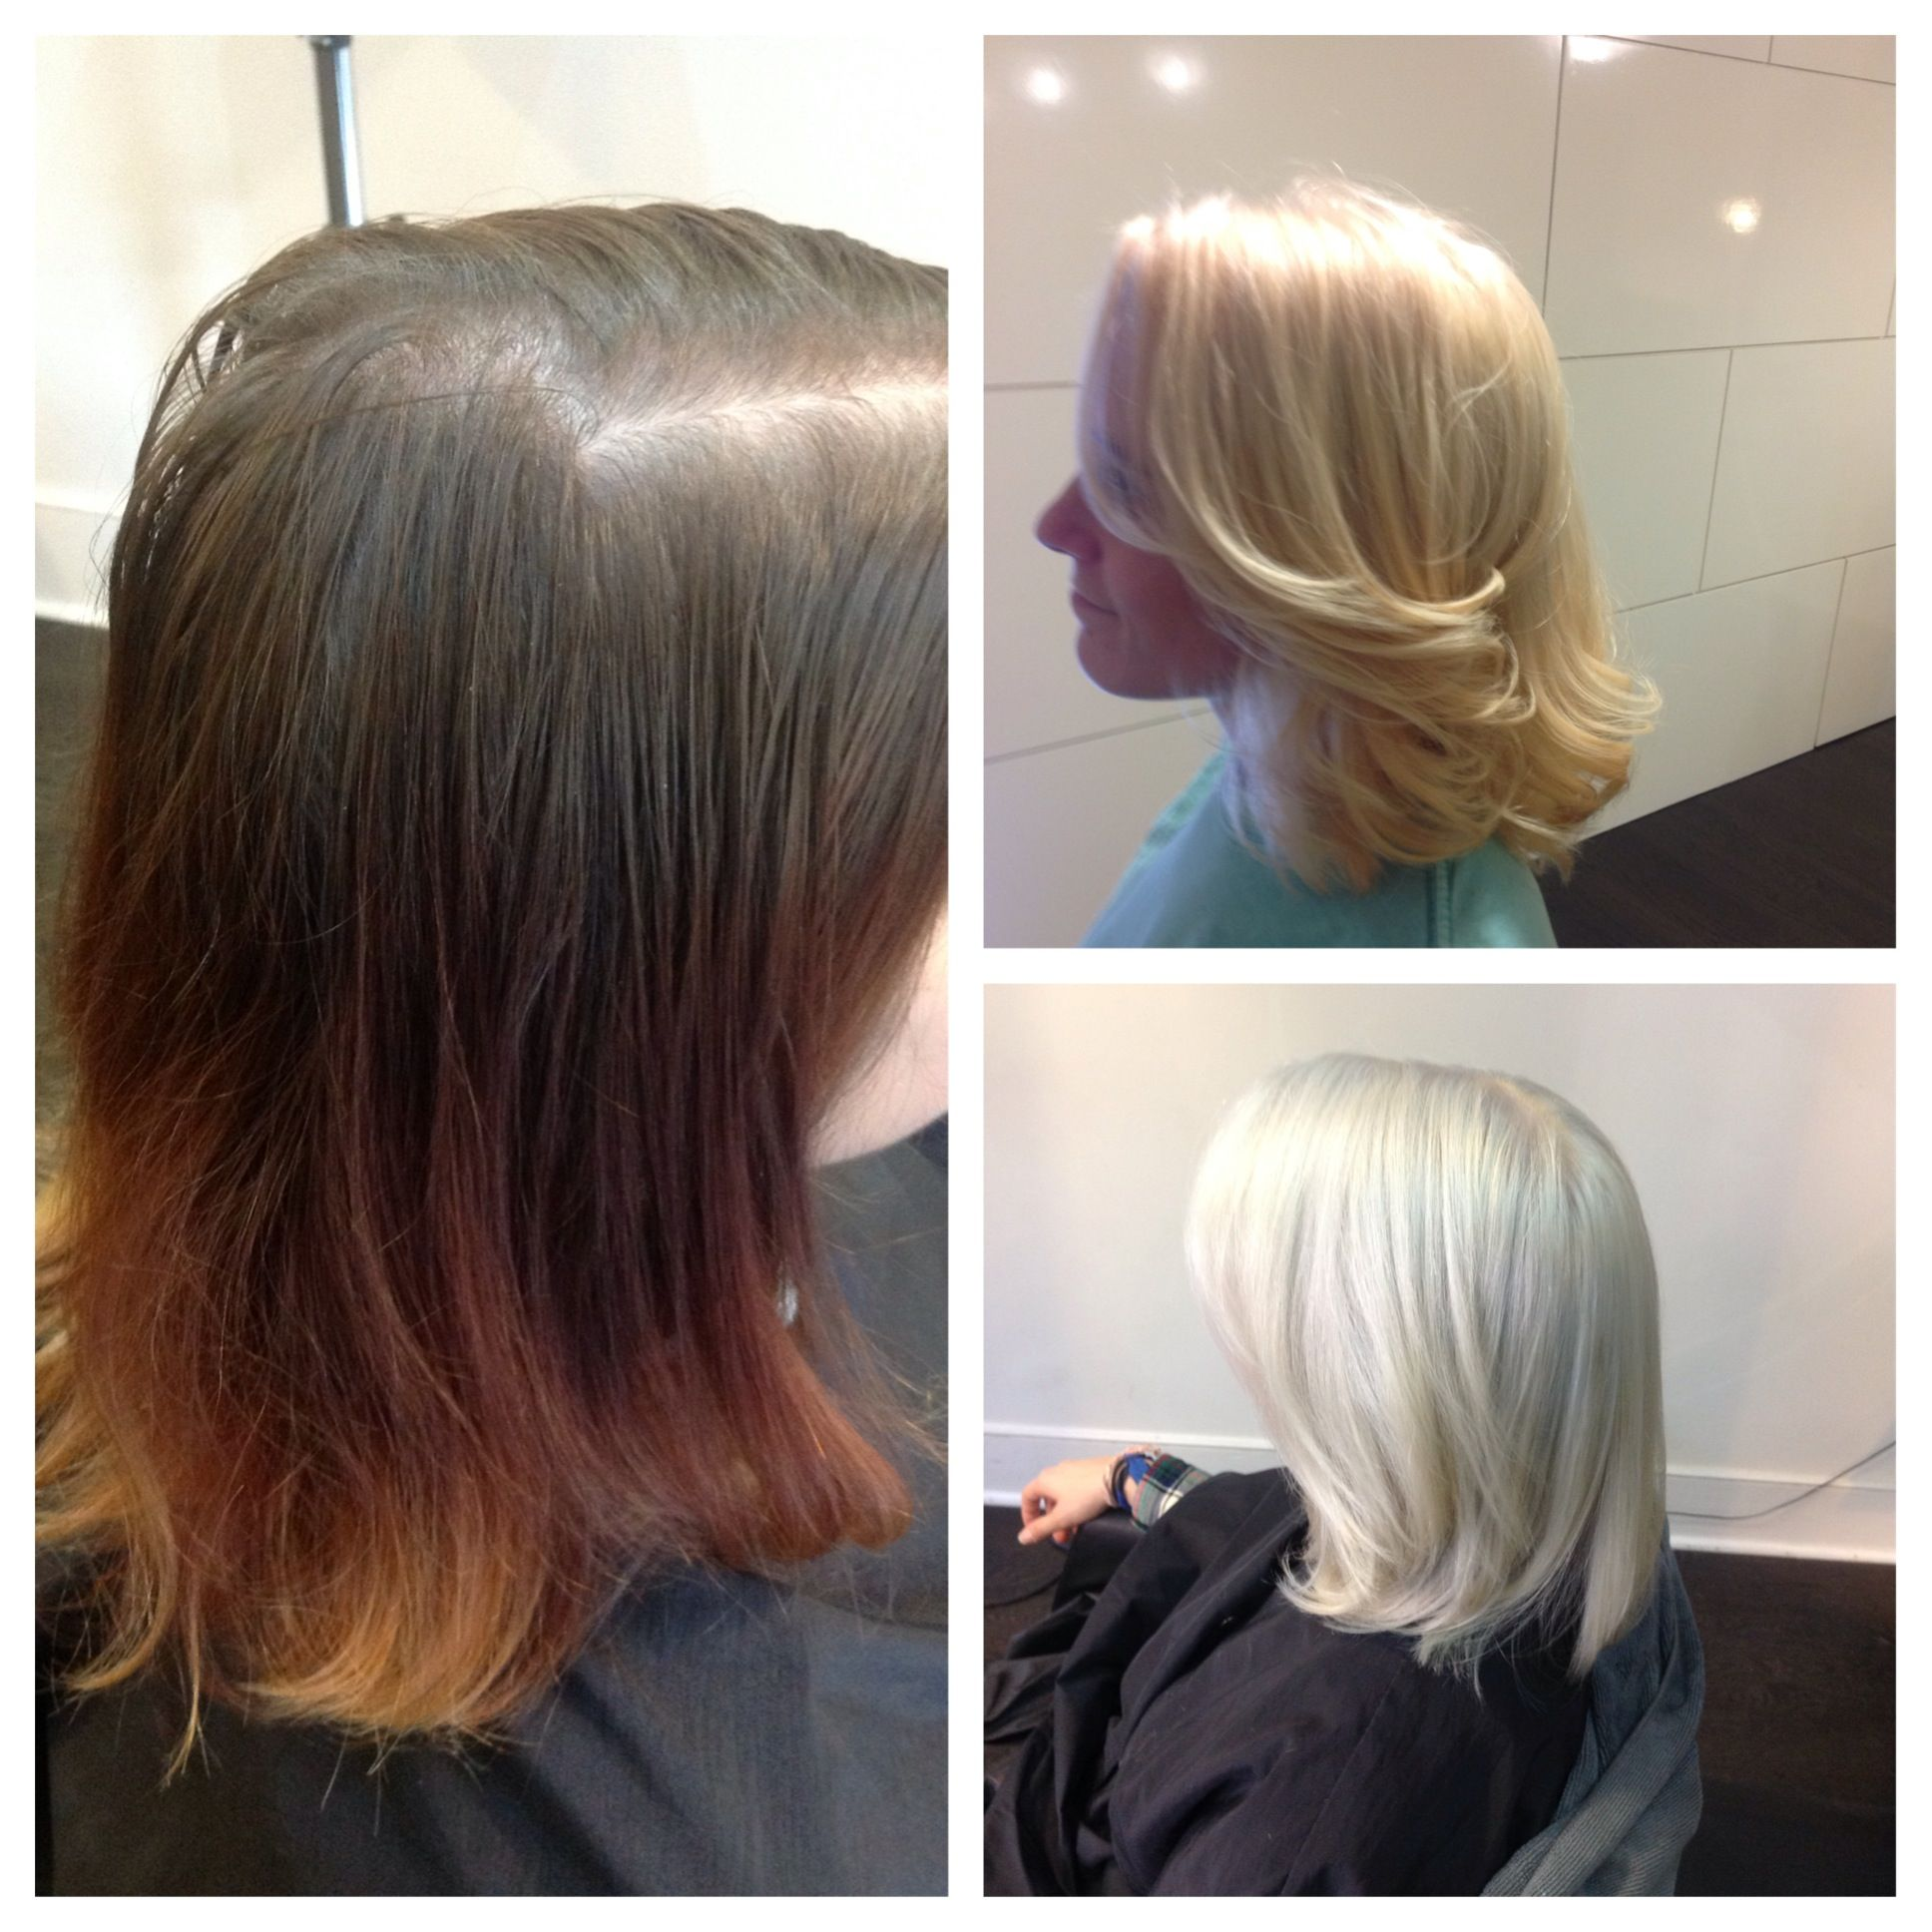 Kaaral Baco color achieved in 2 sessions